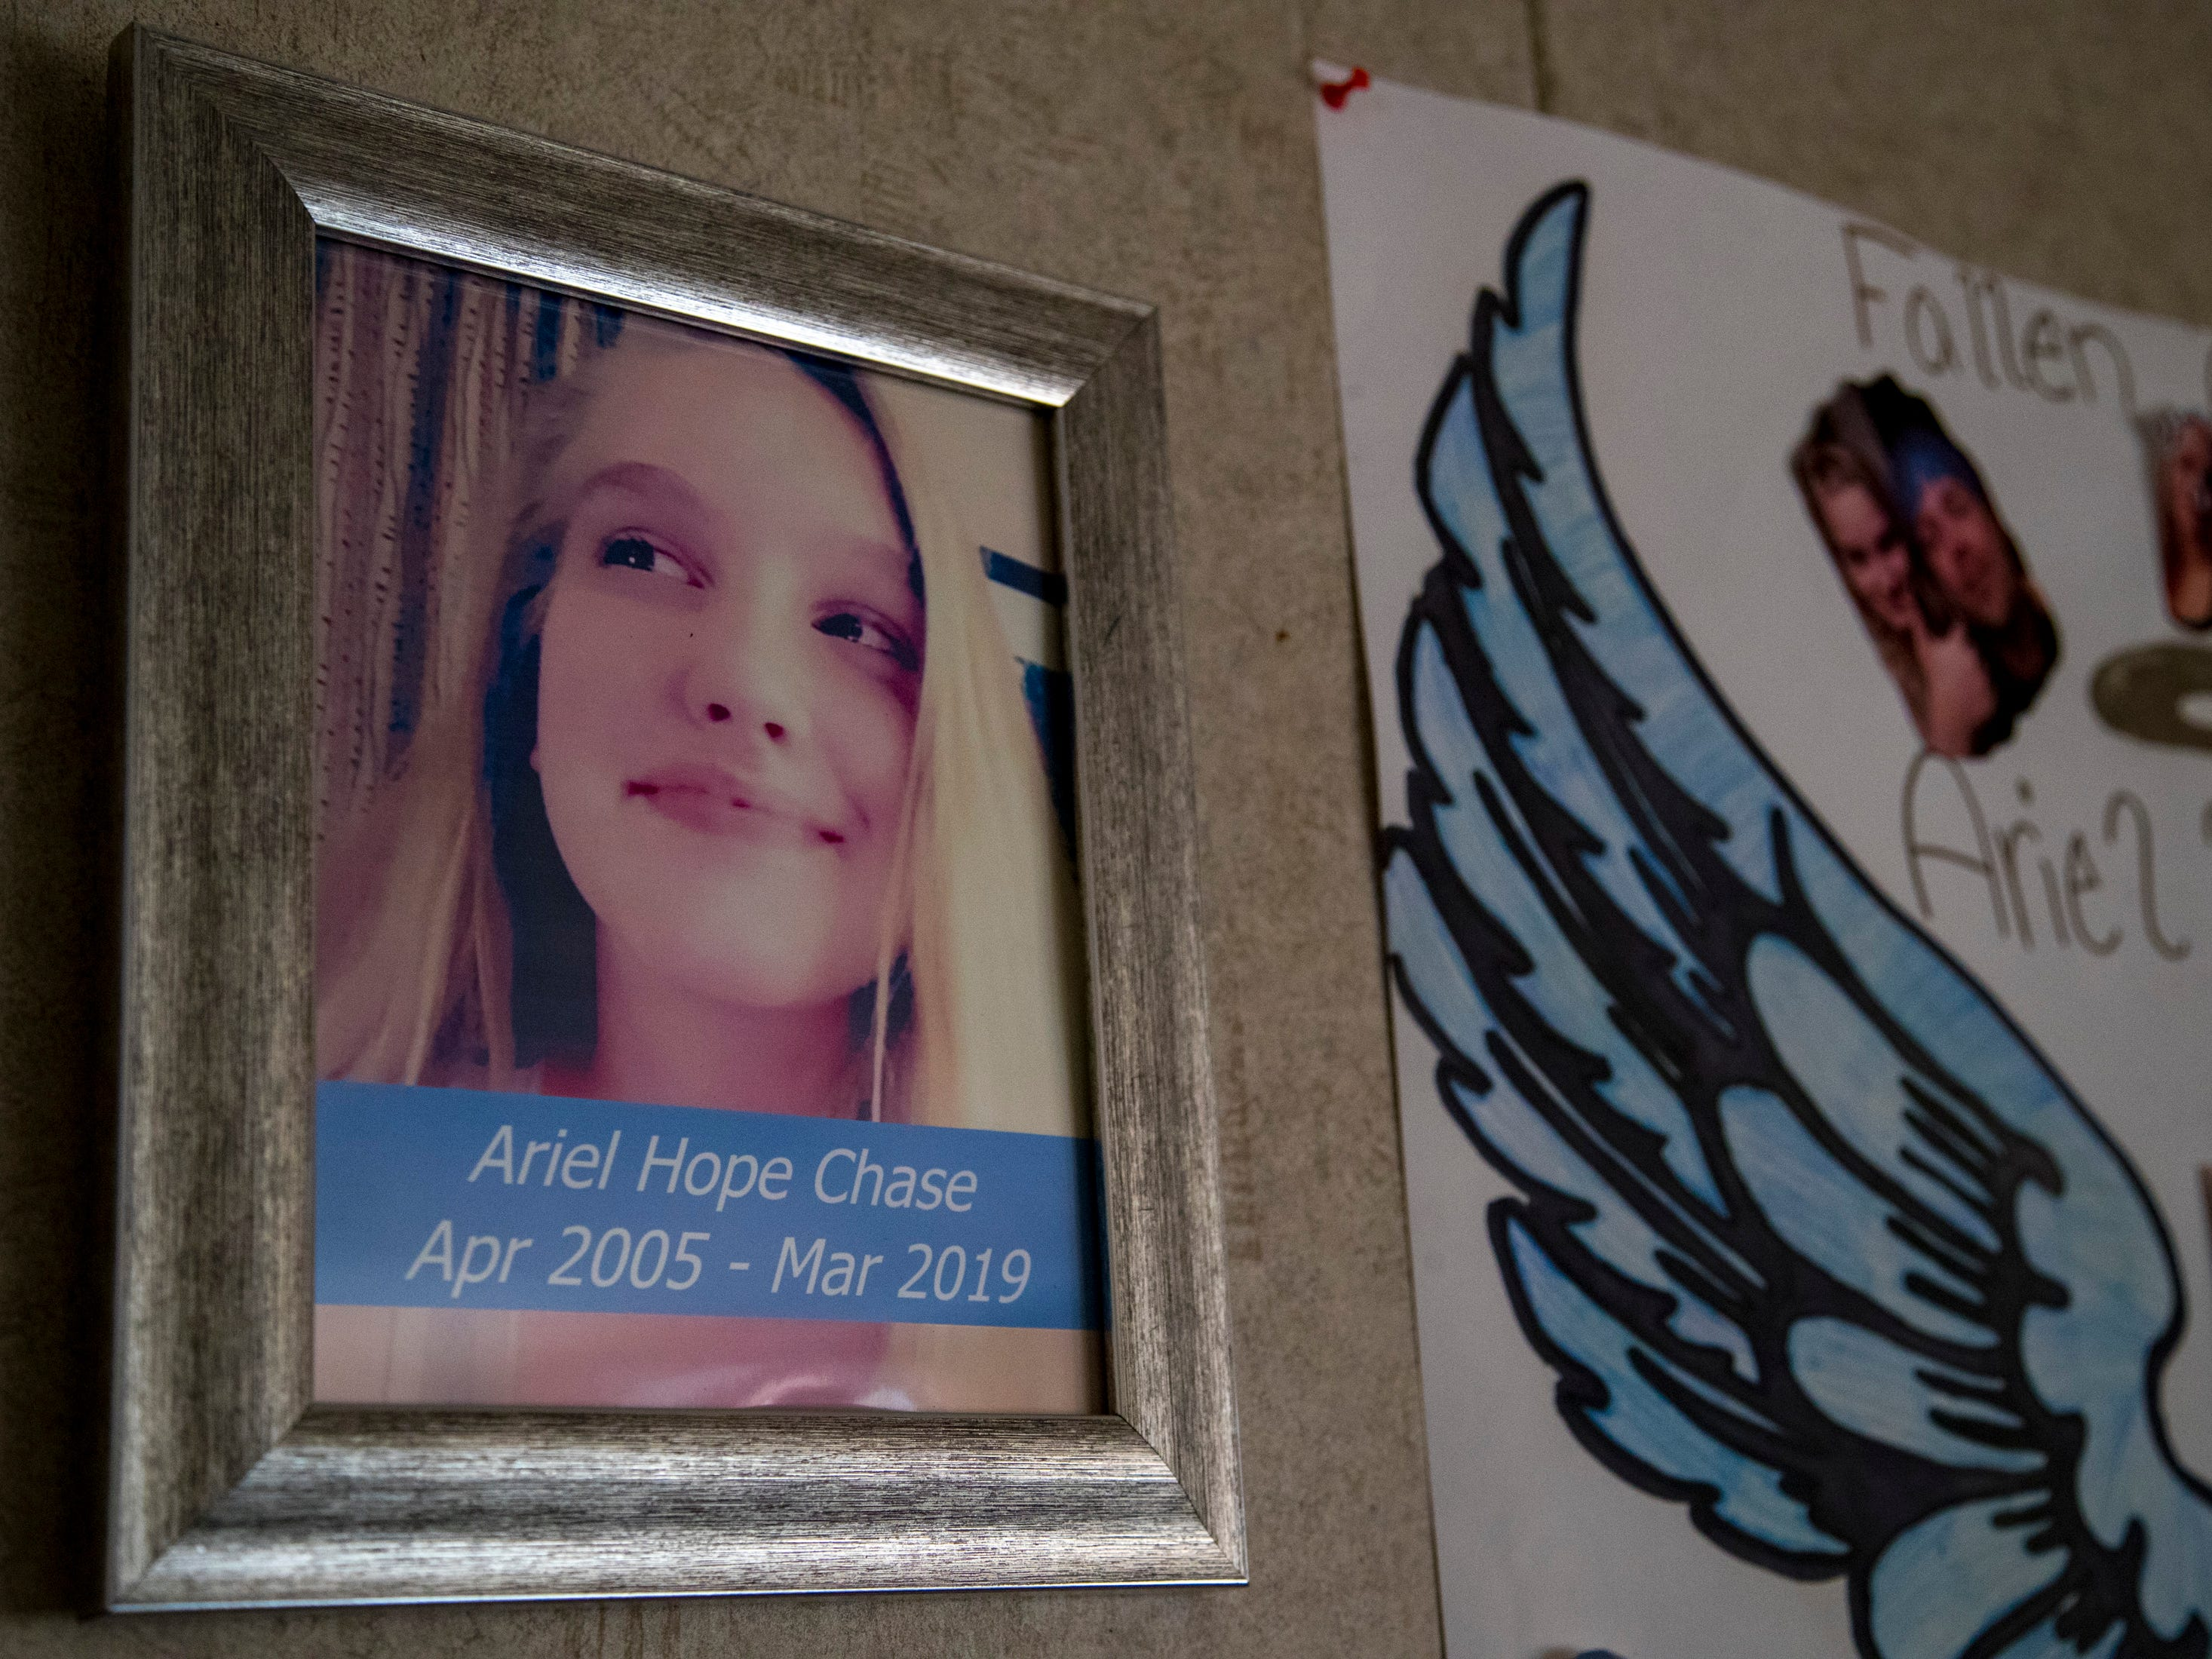 A portrait of Ariel Chase hangs in the home of her father, Michael Chase, in Montgomery County on Thursday, March 14, 2019. Ariel died by suicide on March 4, 2019.